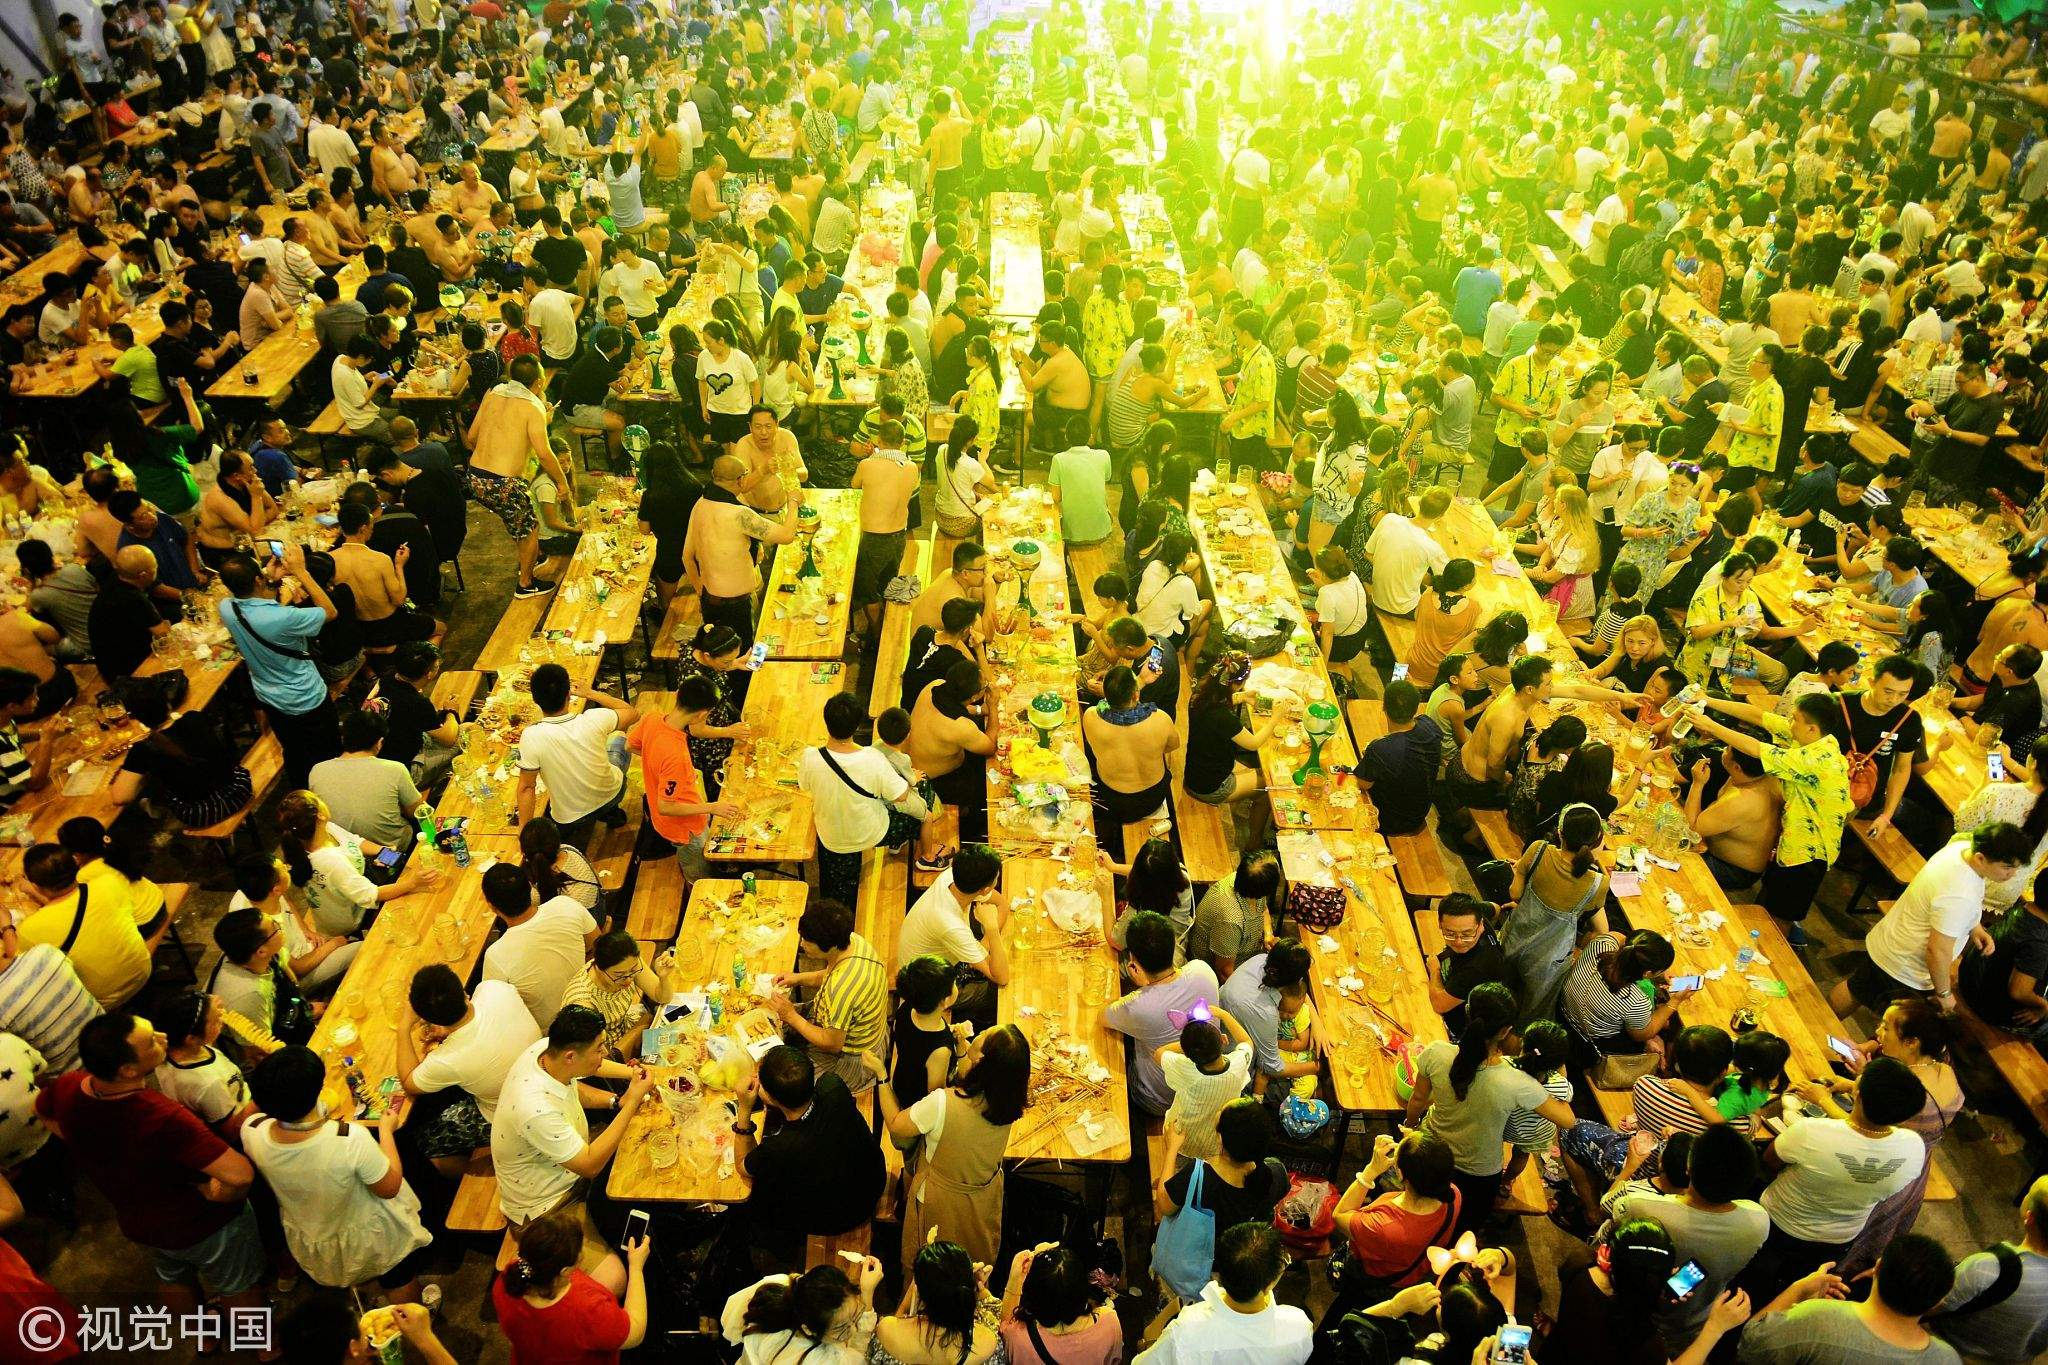 Qingdao to host annual international beer festival